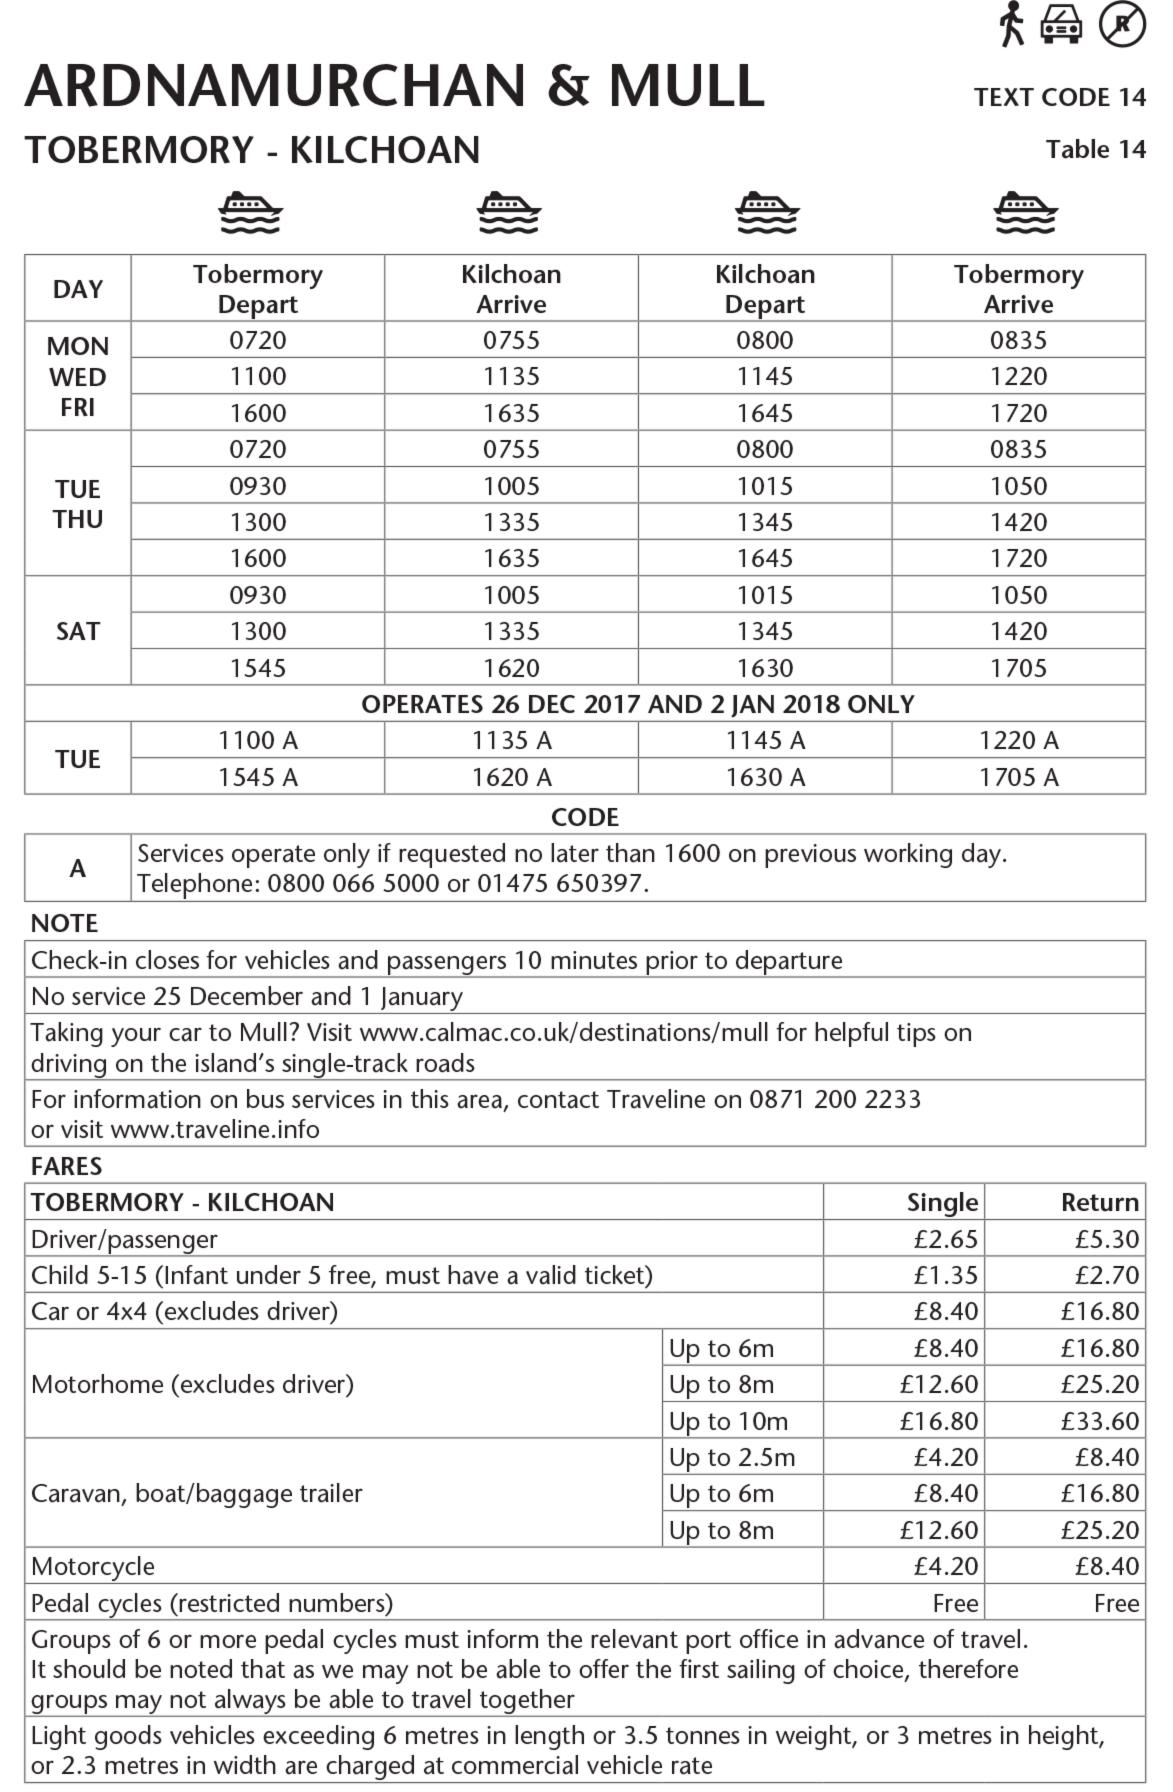 Table 14 Tobermory - Kilchoan Winter 2017-18 - This image is currently not accessible to screen readers. Please phone 0800 066 5000 for timetable details.